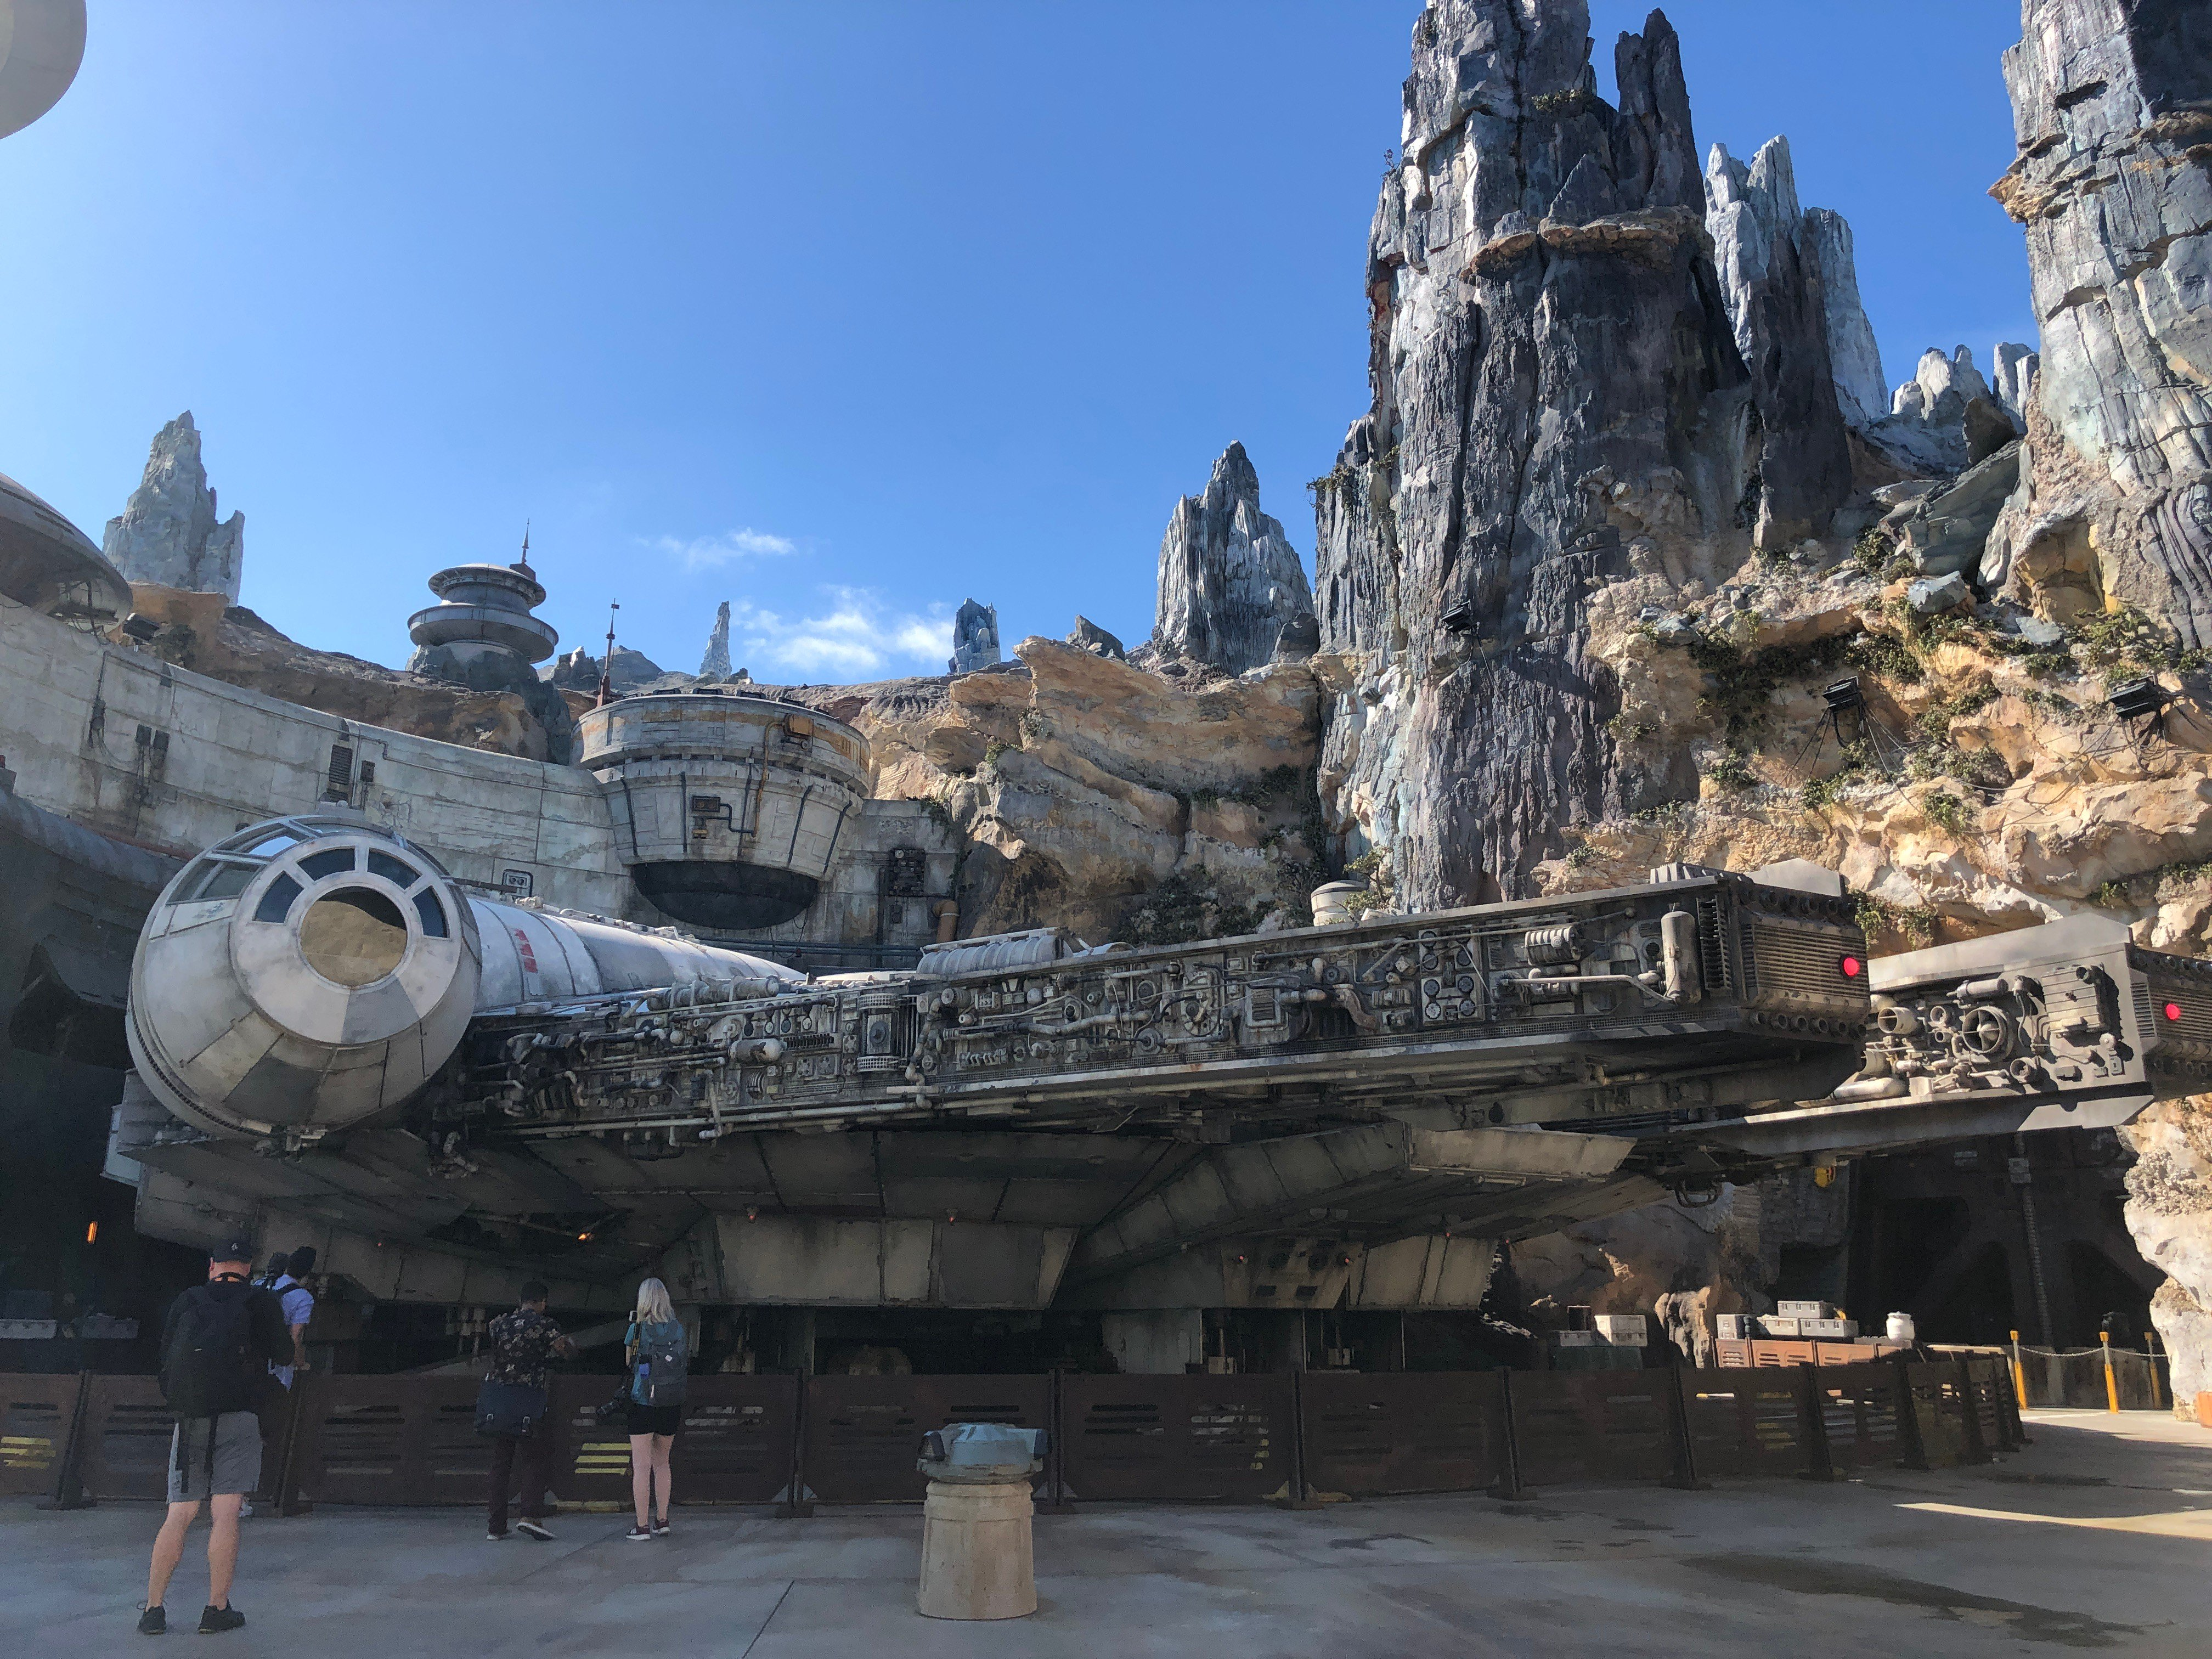 Experience Millennium Falcon: Smuggler's Run At Star Wars